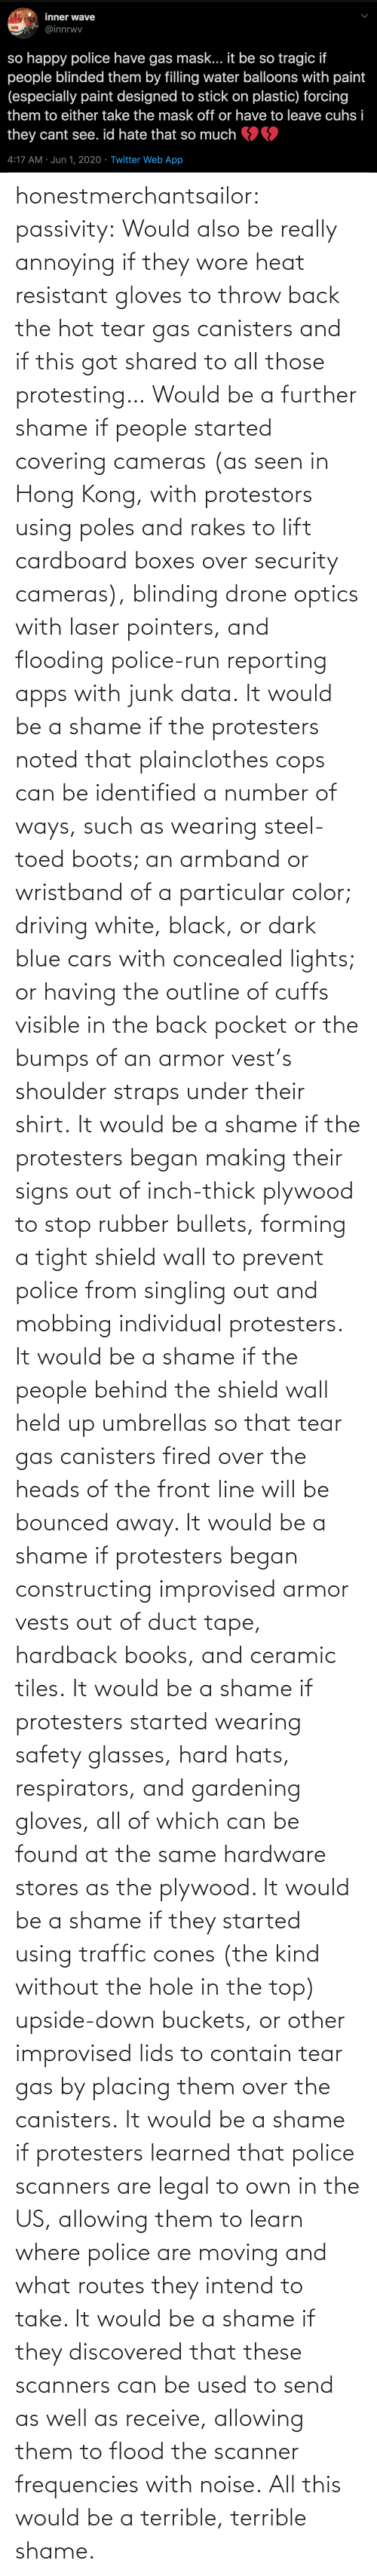 fired: honestmerchantsailor:  passivity: Would also be really annoying if they wore heat resistant gloves to throw back the hot tear gas canisters and if this got shared to all those protesting… Would be a further shame if people started covering cameras (as seen in Hong Kong, with protestors using poles and rakes to lift cardboard boxes over security cameras), blinding drone optics with laser pointers, and flooding police-run reporting apps with junk data. It would be a shame if the protesters noted that plainclothes cops can be identified a number of ways, such as wearing steel-toed boots; an armband or wristband of a particular color; driving white, black, or dark blue cars with concealed lights; or having the outline of cuffs visible in the back pocket or the bumps of an armor vest's shoulder straps under their shirt. It would be a shame if the protesters began making their signs out of inch-thick plywood to stop rubber bullets, forming a tight shield wall to prevent police from singling out and mobbing individual protesters. It would be a shame if the people behind the shield wall held up umbrellas so that tear gas canisters fired over the heads of the front line will be bounced away. It would be a shame if protesters began constructing improvised armor vests out of duct tape, hardback books, and ceramic tiles. It would be a shame if protesters started wearing safety glasses, hard hats, respirators, and gardening gloves, all of which can be found at the same hardware stores as the plywood. It would be a shame if they started using traffic cones (the kind without the hole in the top) upside-down buckets, or other improvised lids to contain tear gas by placing them over the canisters. It would be a shame if protesters learned that police scanners are legal to own in the US, allowing them to learn where police are moving and what routes they intend to take. It would be a shame if they discovered that these scanners can be used to send as well as receive, allowing them to flood the scanner frequencies with noise. All this would be a terrible, terrible shame.